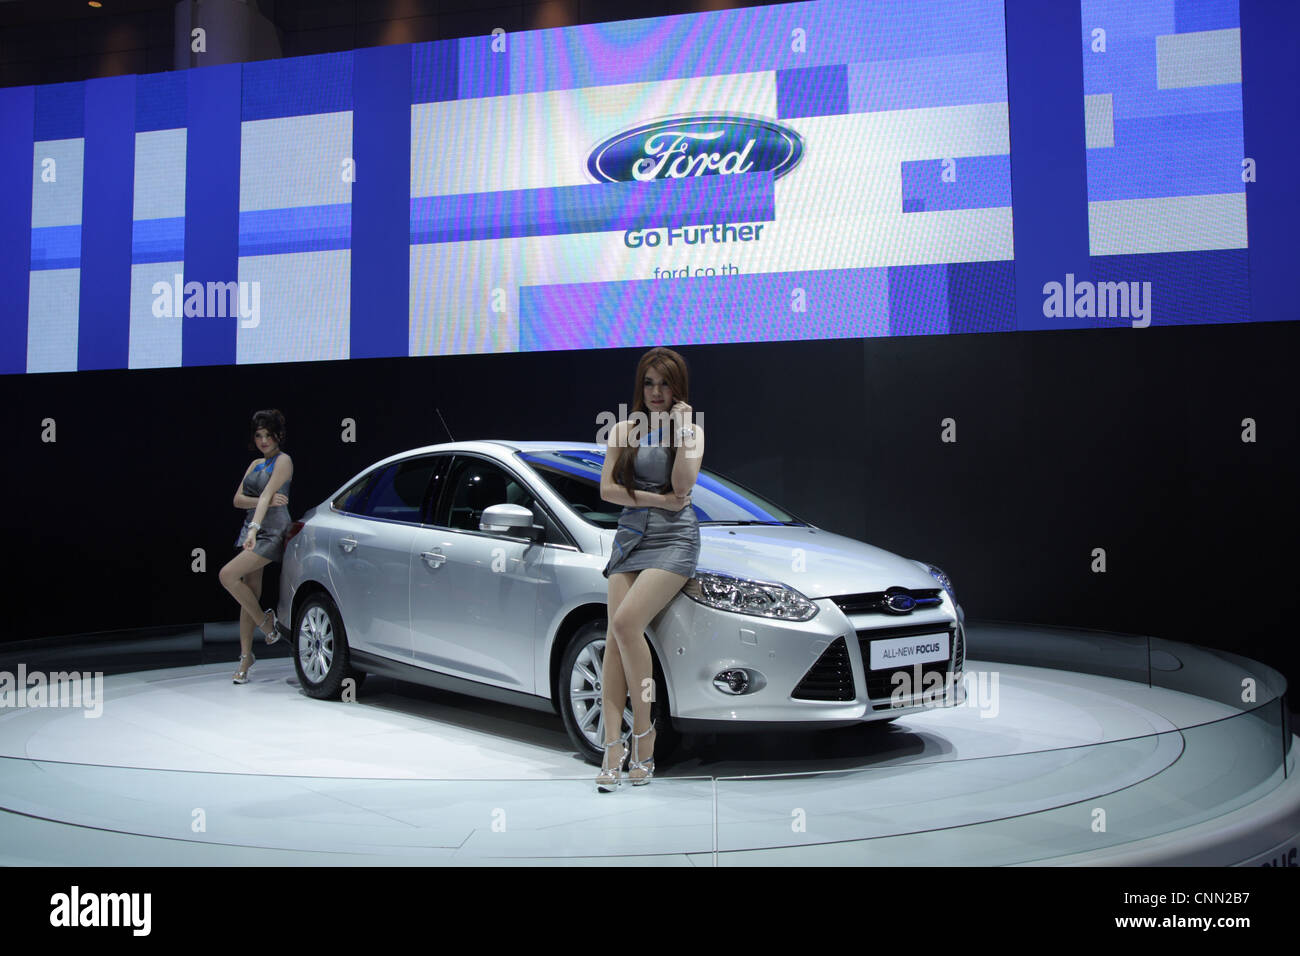 Model Presenters Posing With Ford Car In Thailand Motor Show 2012